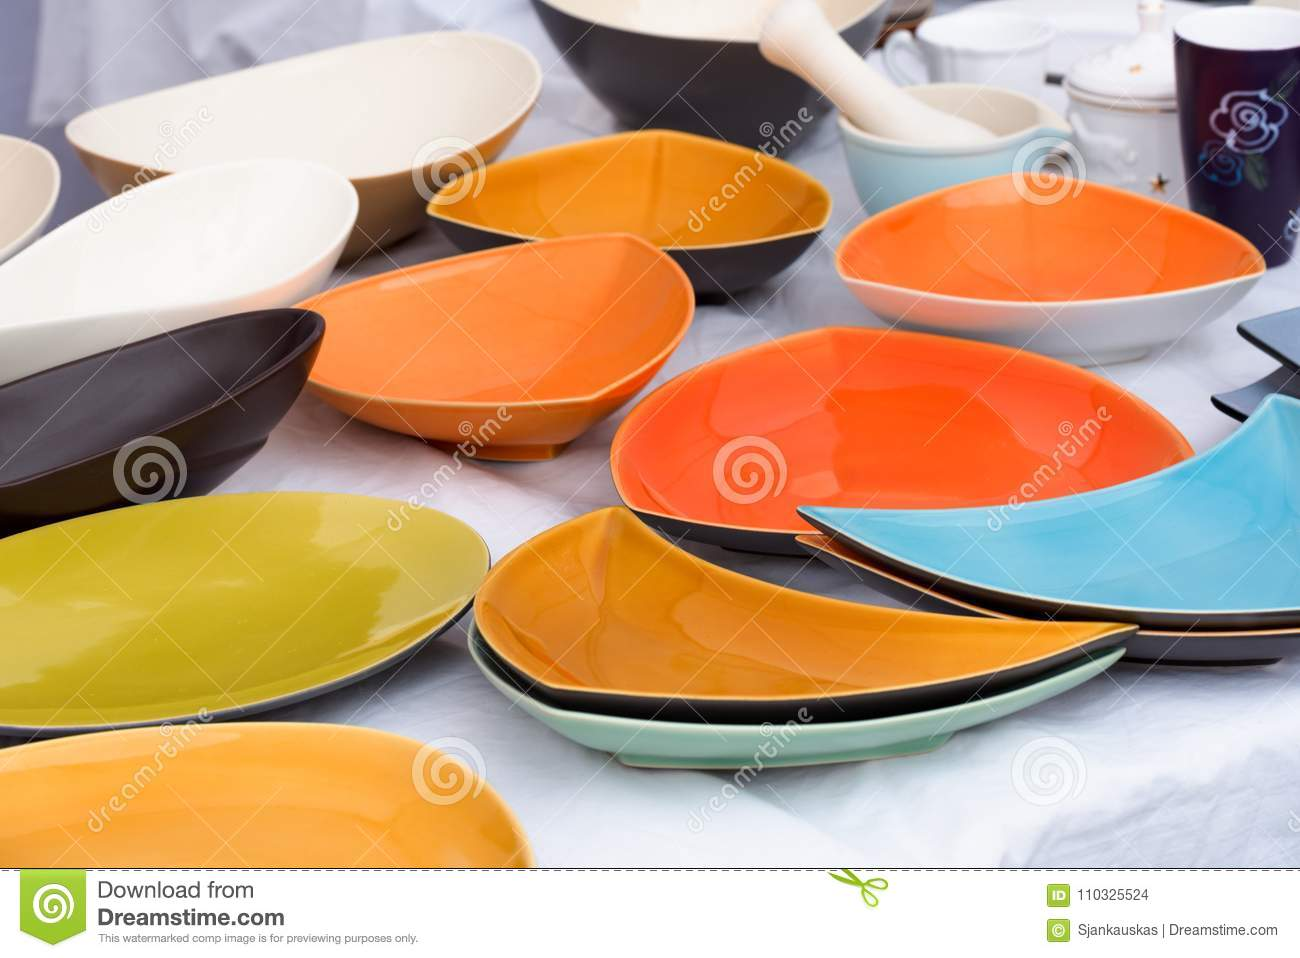 Plates For Sale >> Colorful Plates And Bowls For Sale At A Local Market Stock